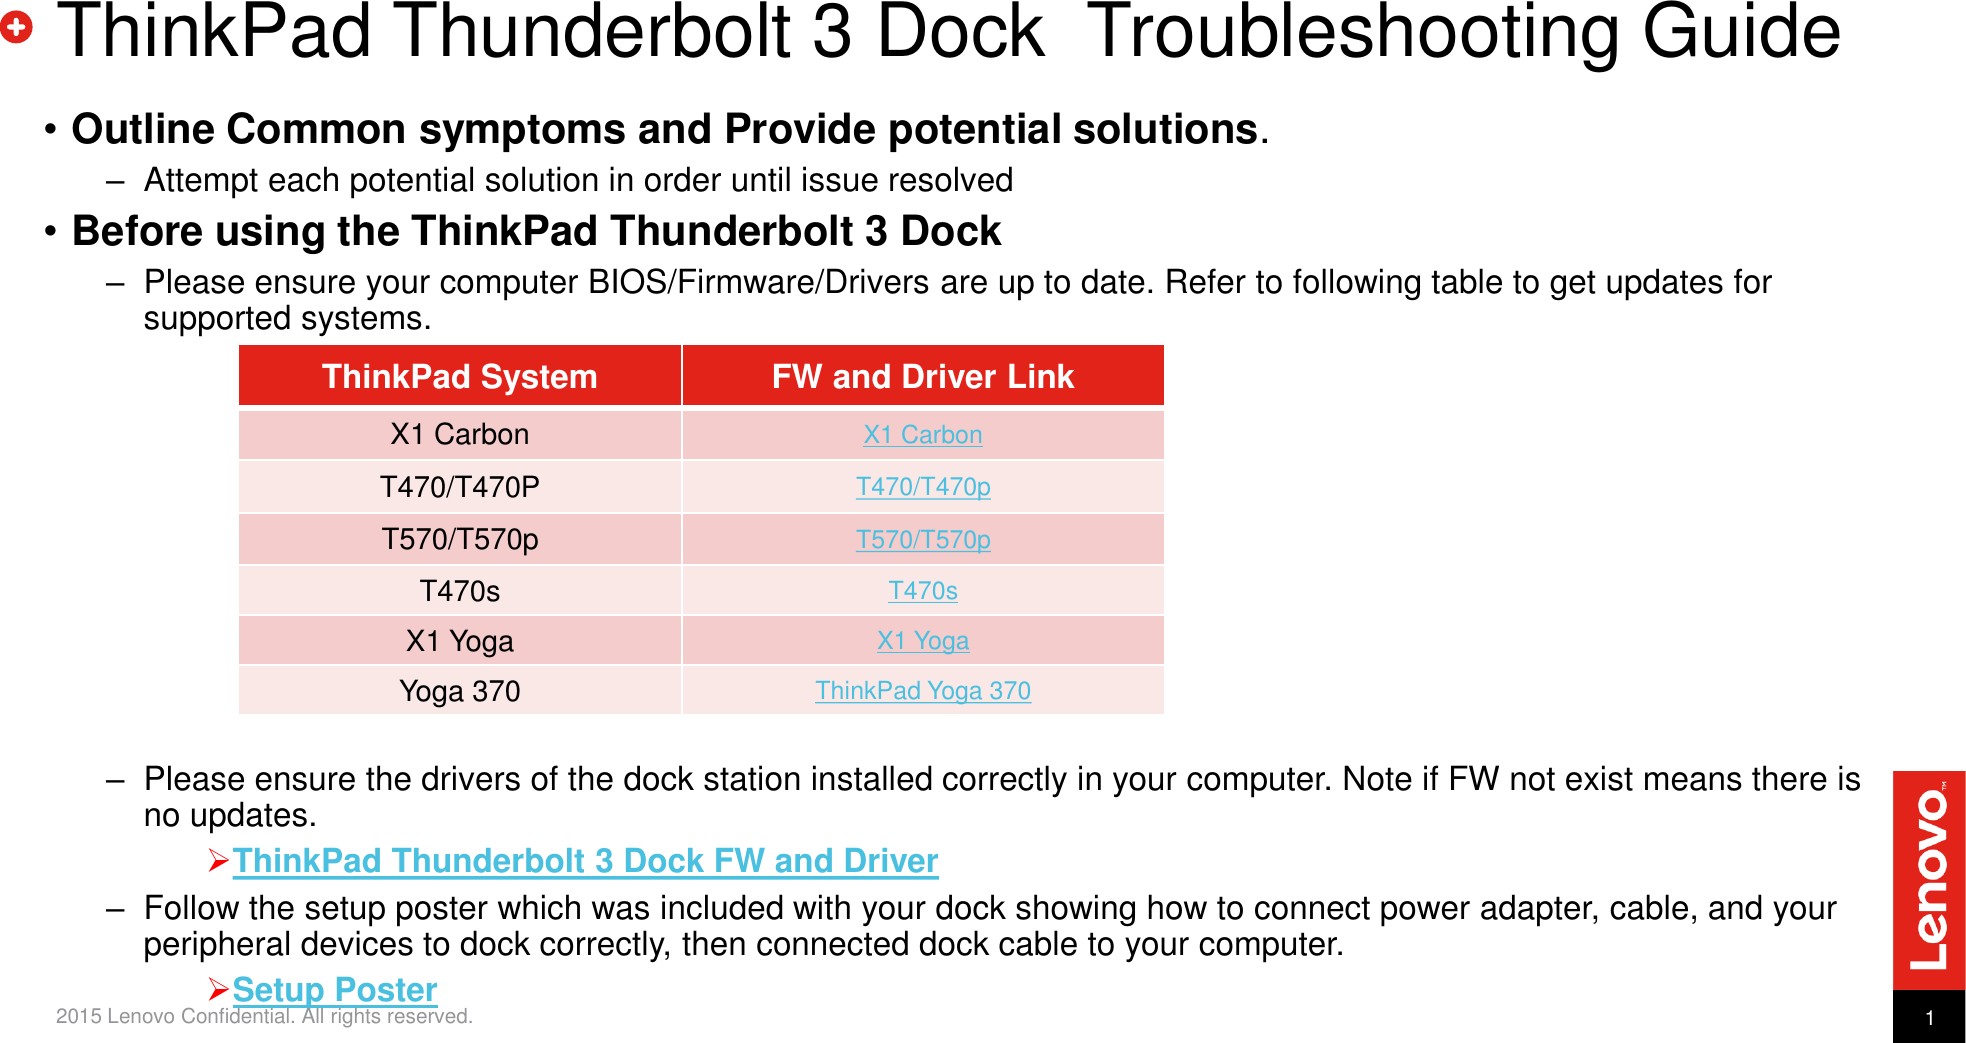 Lenovo Tp Thunderbolt3Dock Troubleshooting Presentation Goes